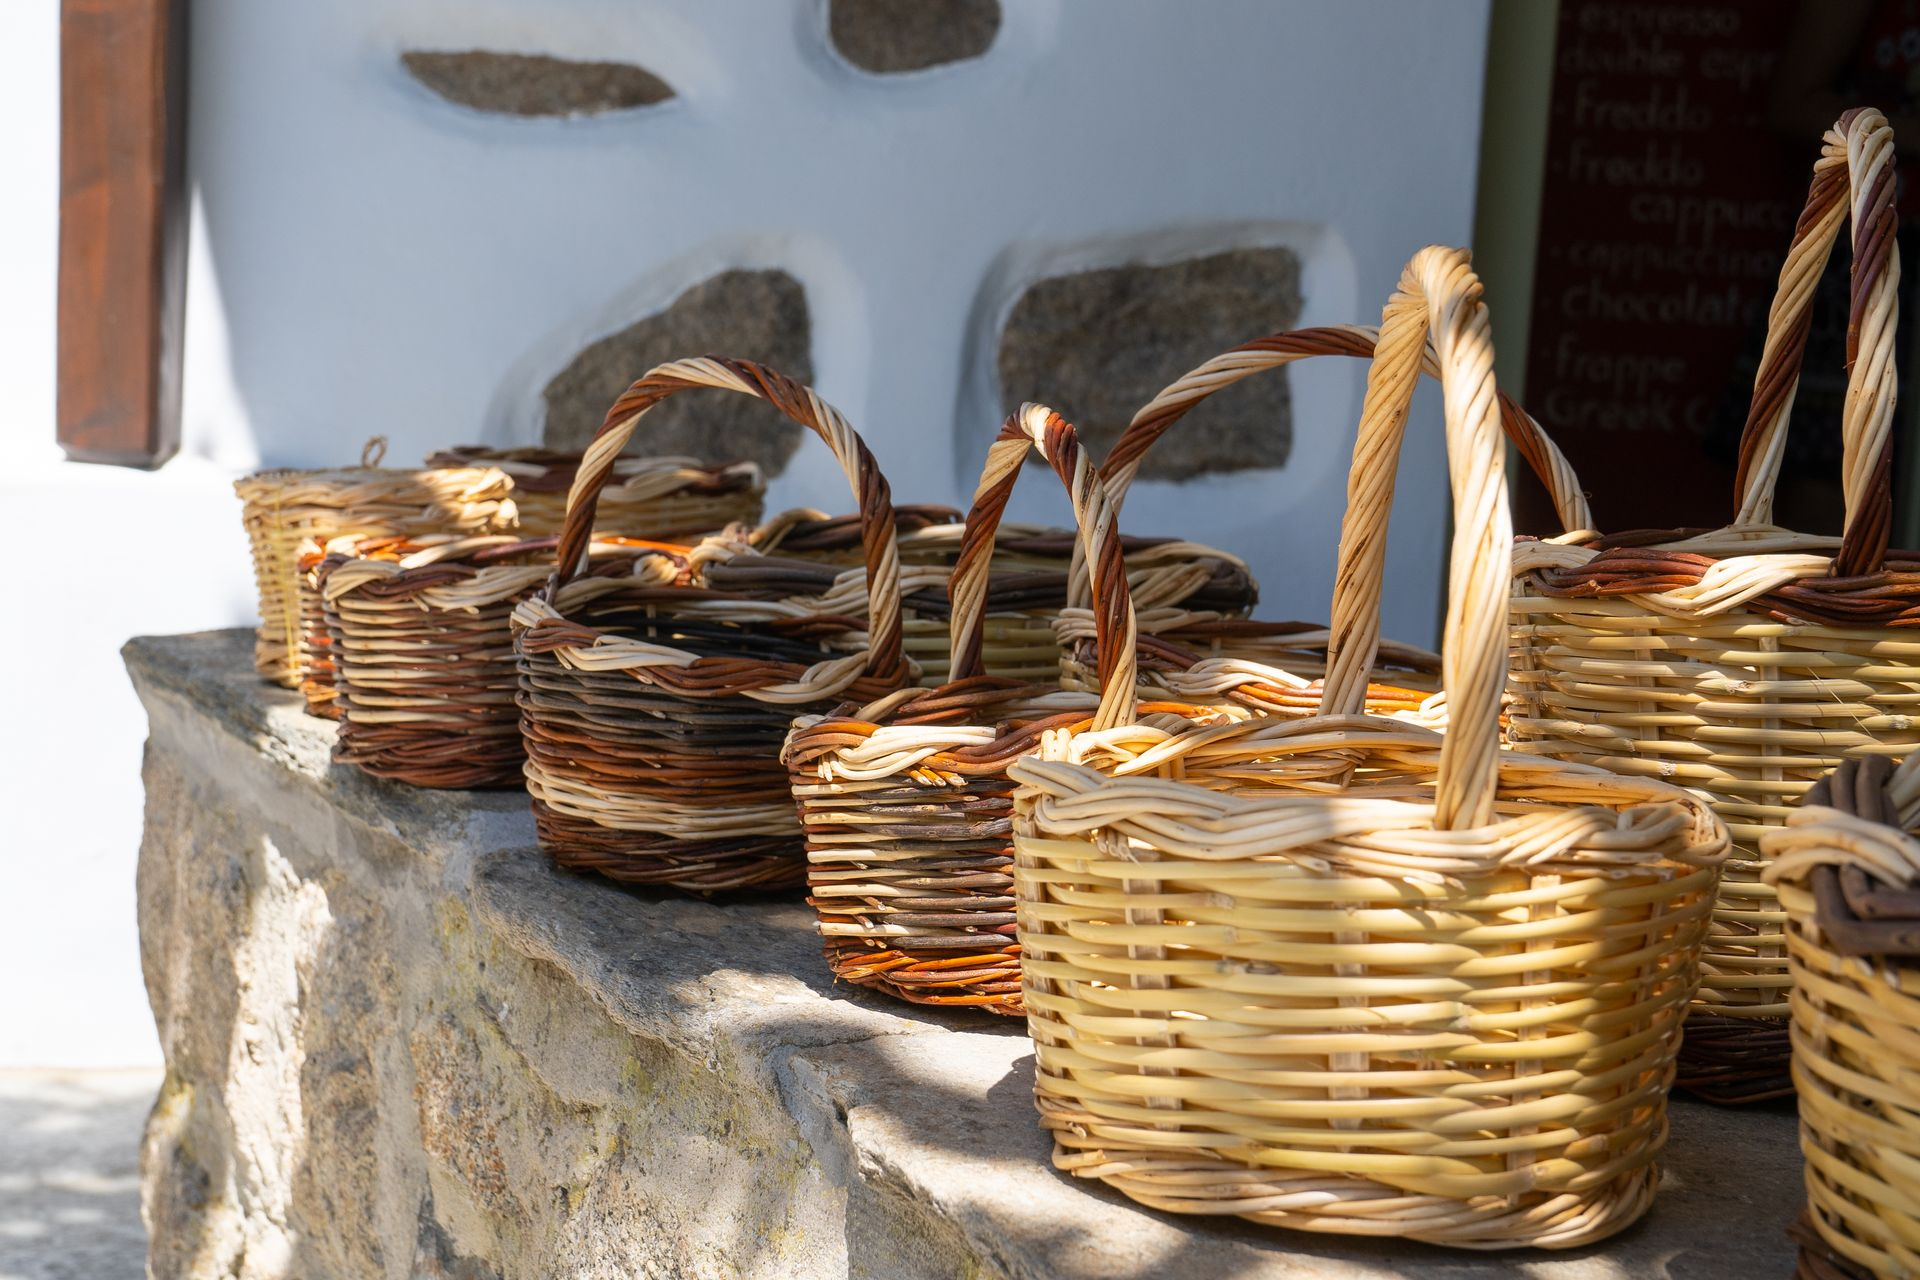 Volax is also a village of basket-weavers